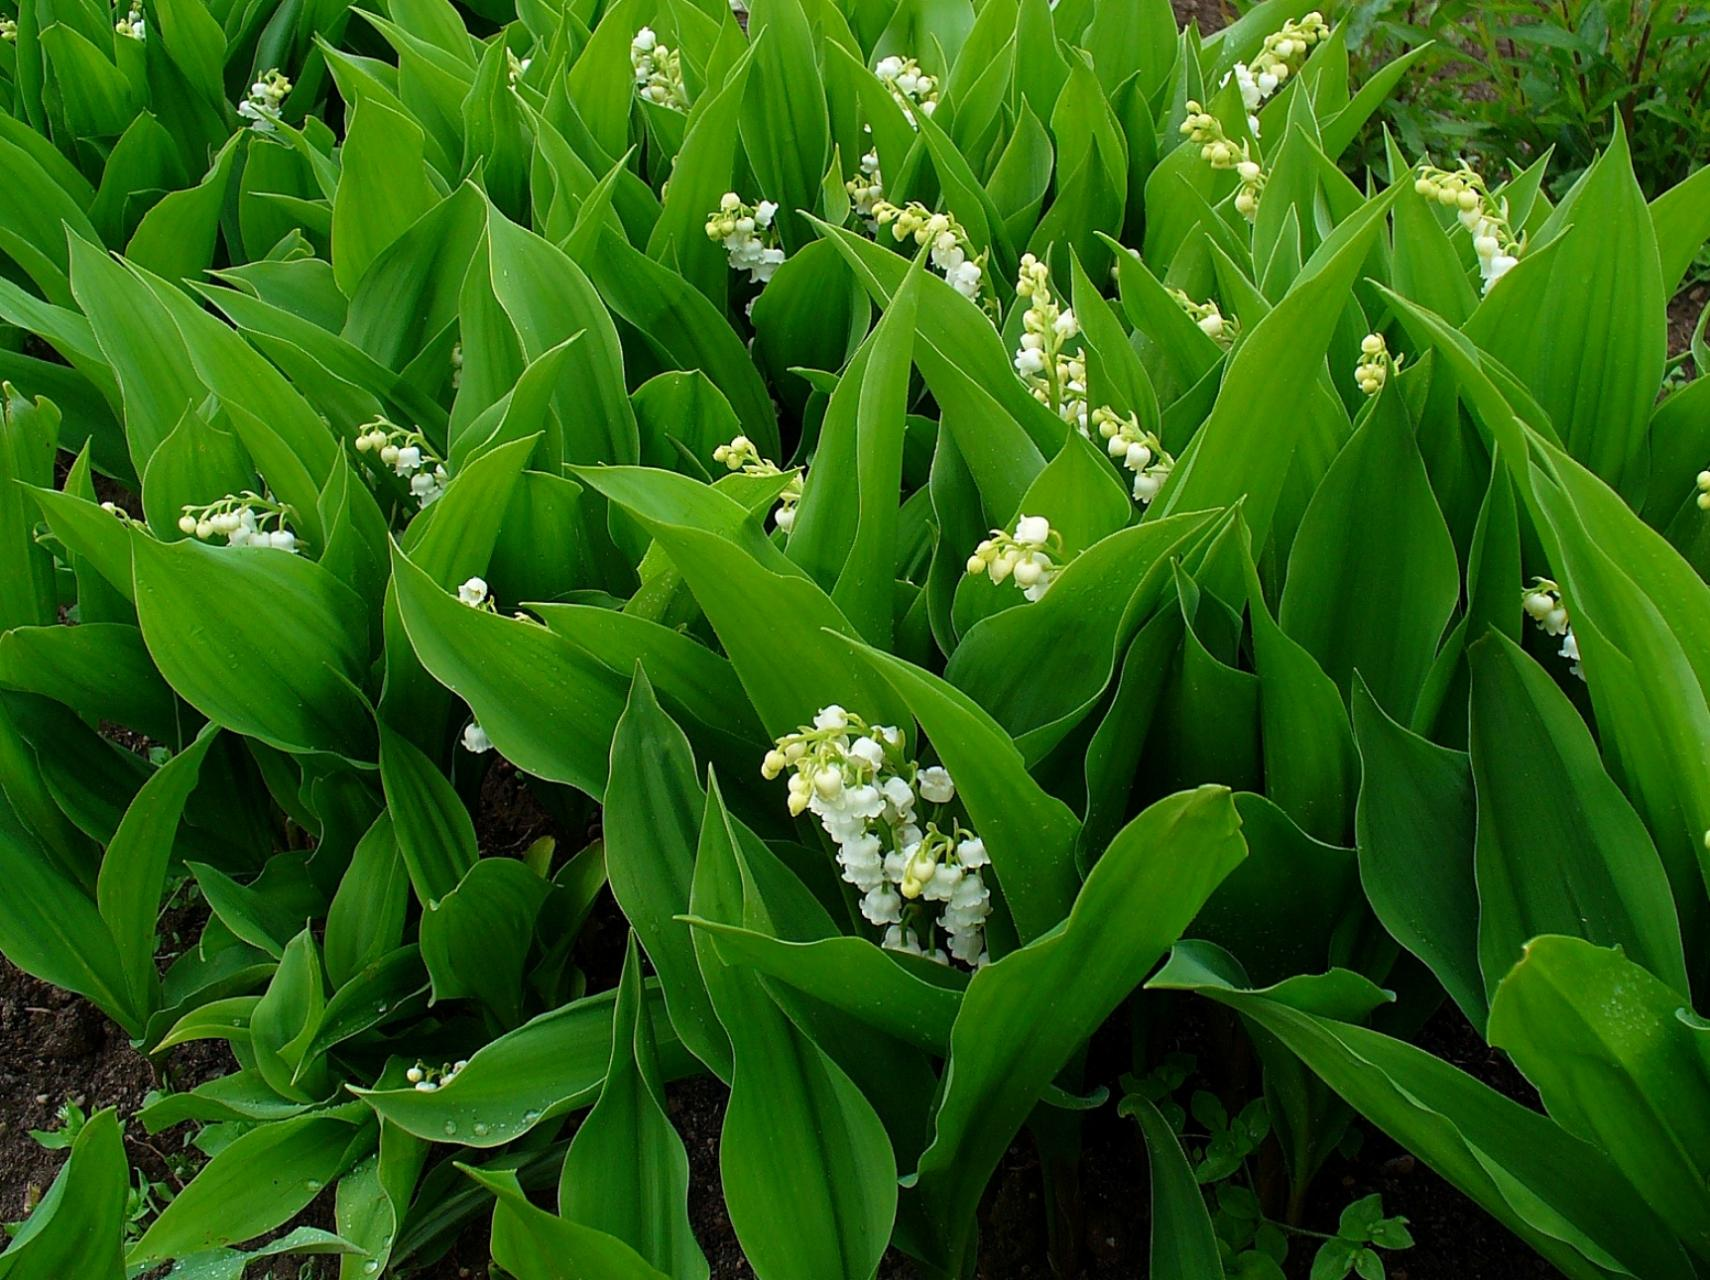 Legends and facts about the lily of the valley dummer the lily of the valley is also known as our ladys tears or marys tears from christian legends which came about from marys weeping when jesus was being izmirmasajfo